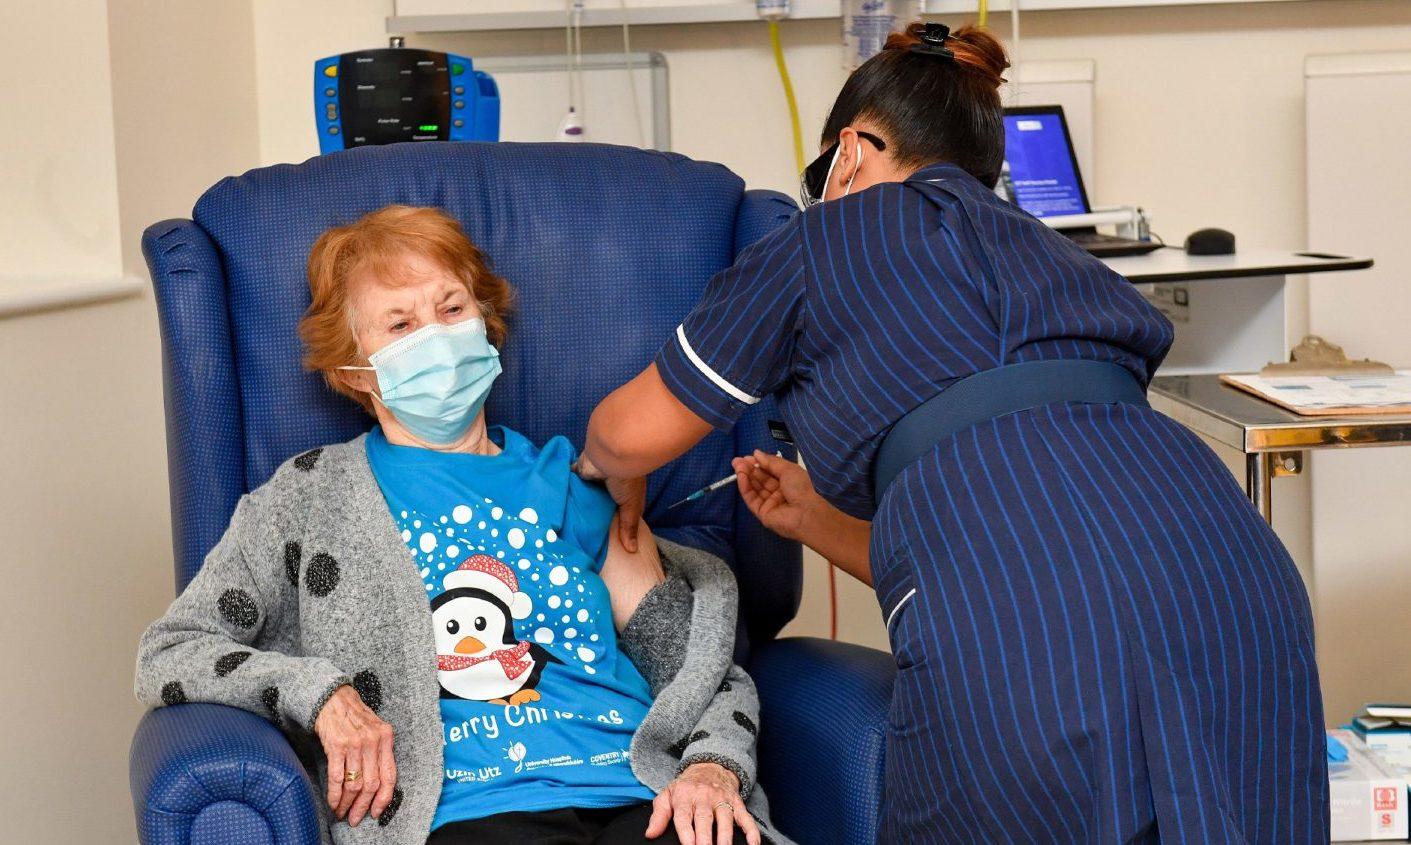 Margaret Keenan, 90, is the first patient in the United Kingdom to receive the Pfizer/BioNtech covid-19 vaccine at University Hospital, Coventry, administered by nurse May Parsons.